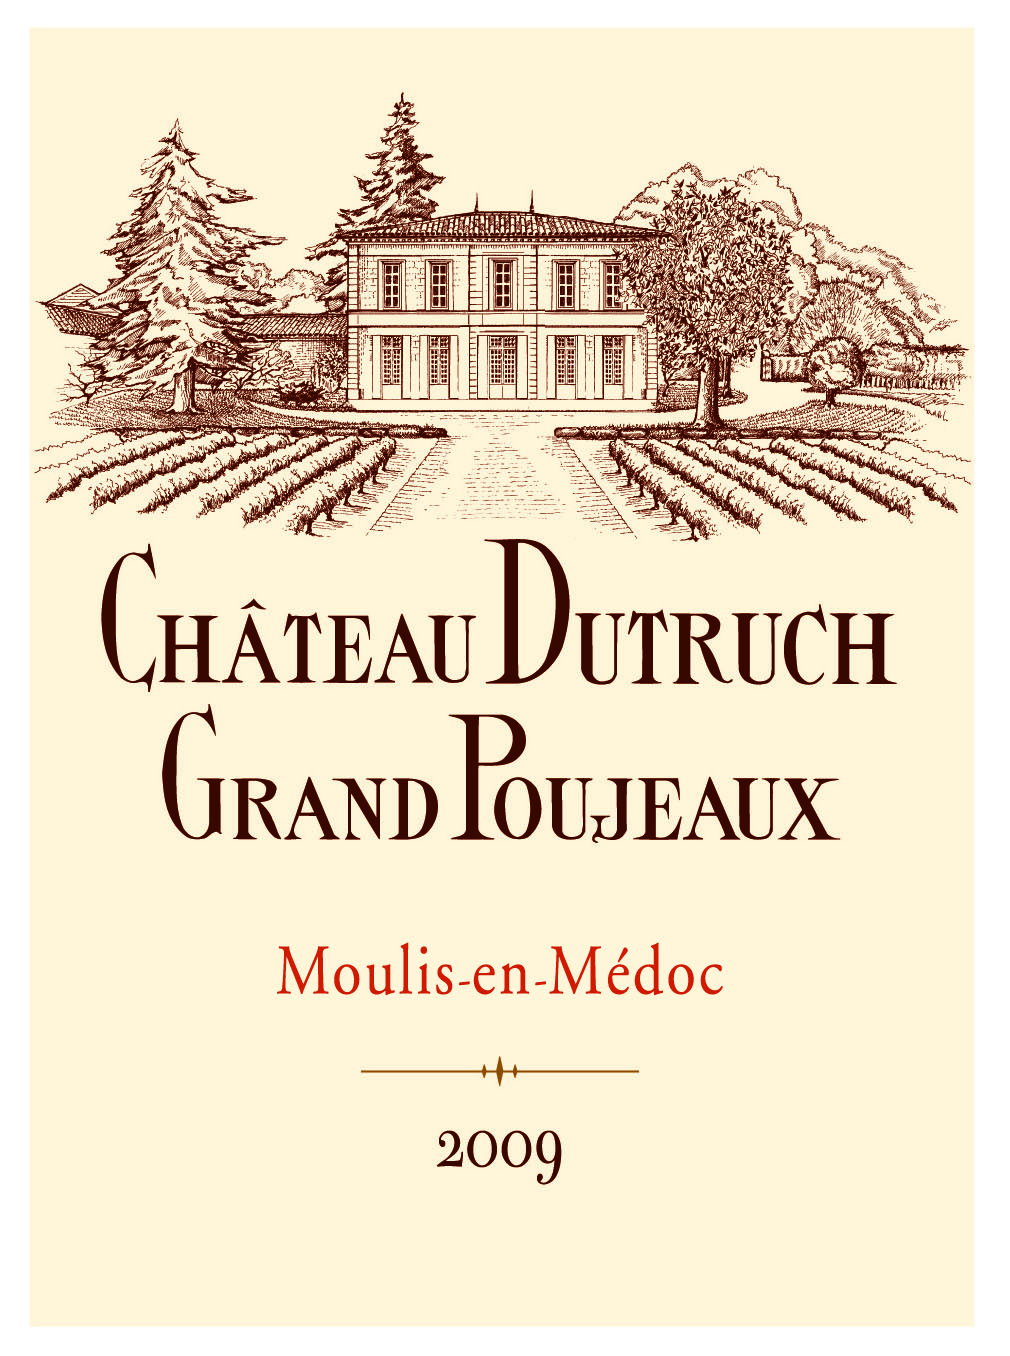 Label - Dutruch Grand Poujeaux 2009